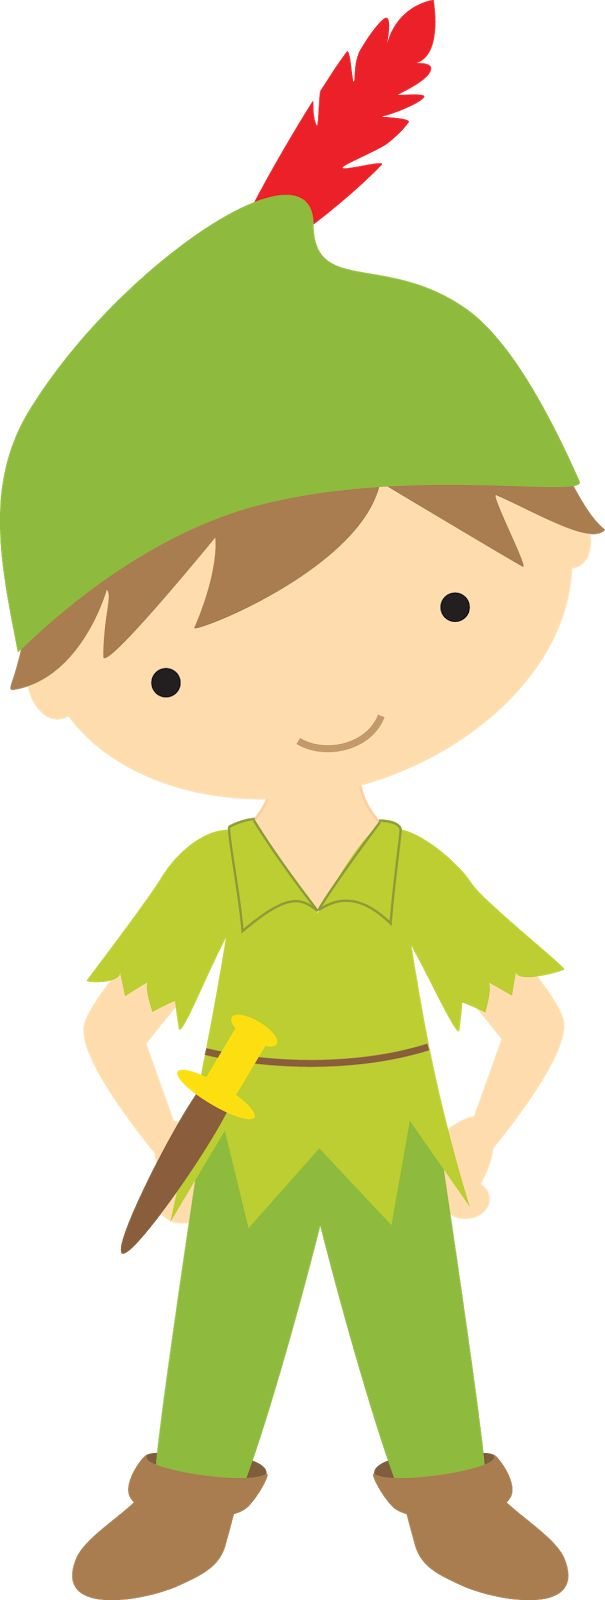 166 best baby peter pan images on pinterest peter o toole peter rh pinterest com peter pan hat clipart disney peter pan clipart